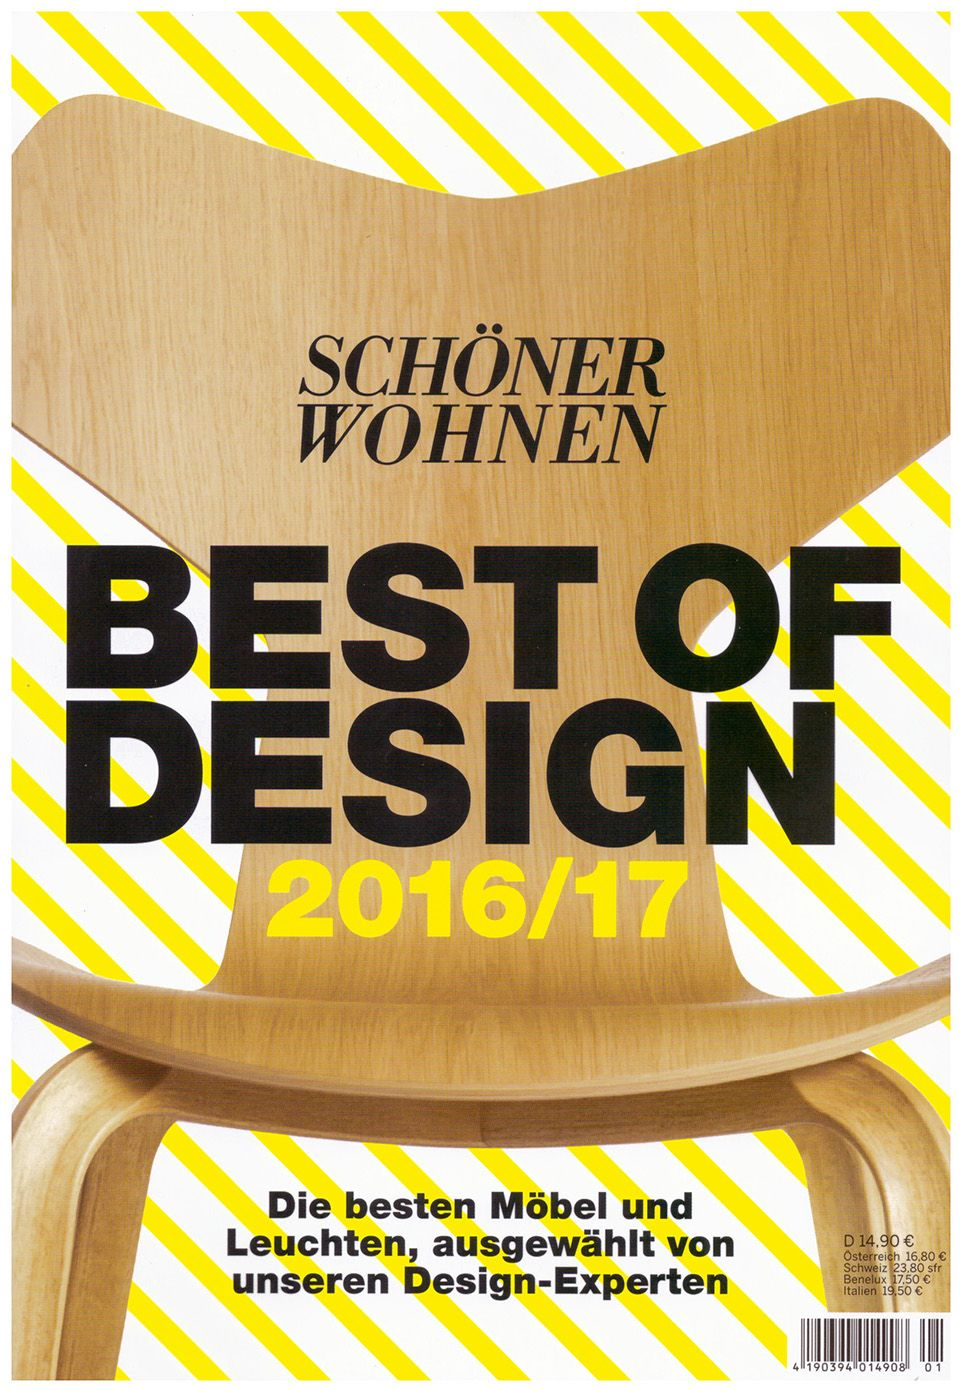 Thank You to Schöner Wohnen for featuring us in the BEST OF DESIGN Issue 2016/17!!!